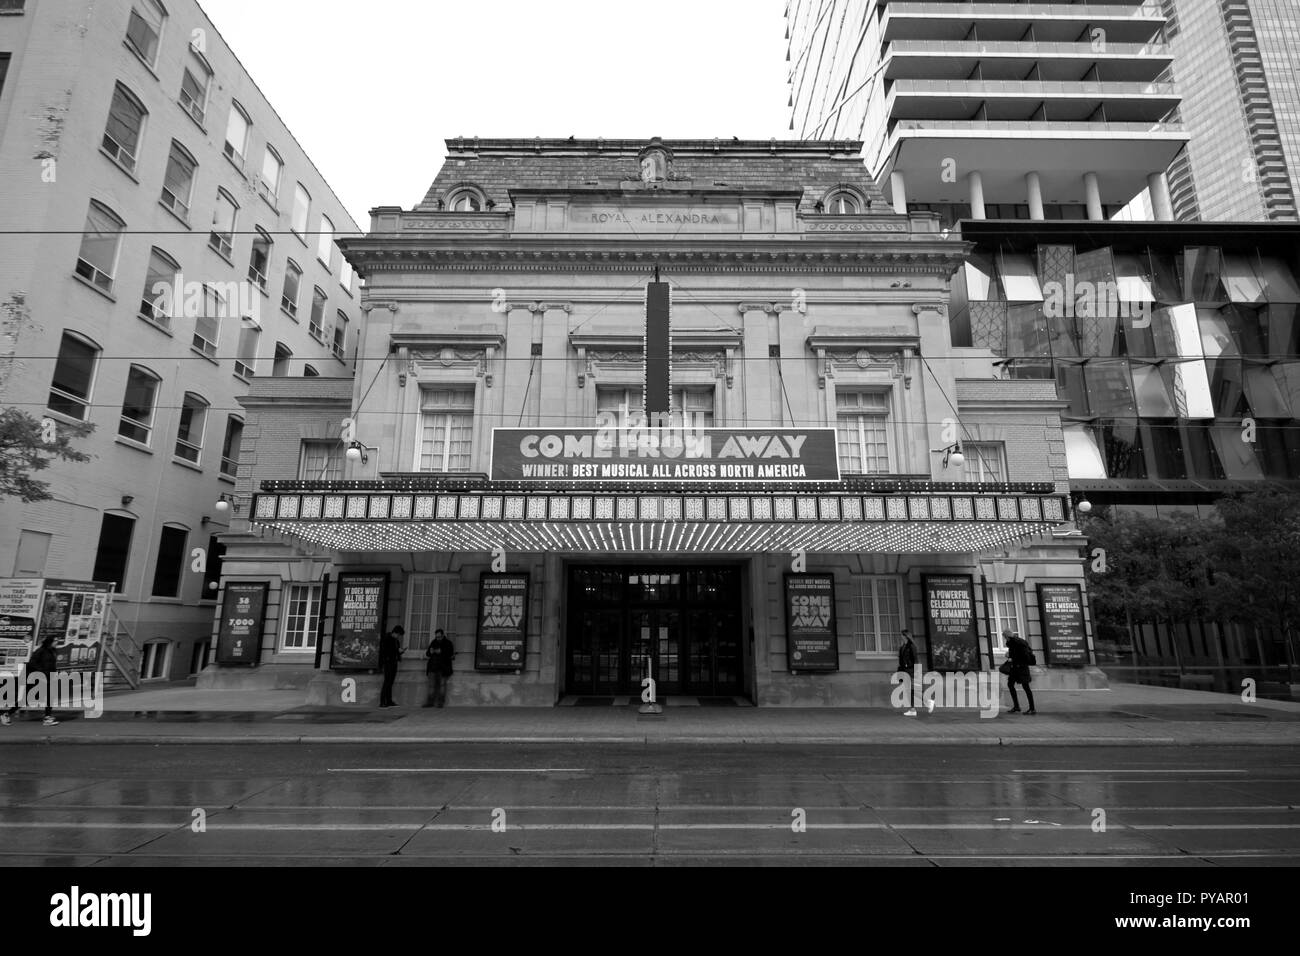 The Royal Alexandra Theater in Toronto Stock Photo